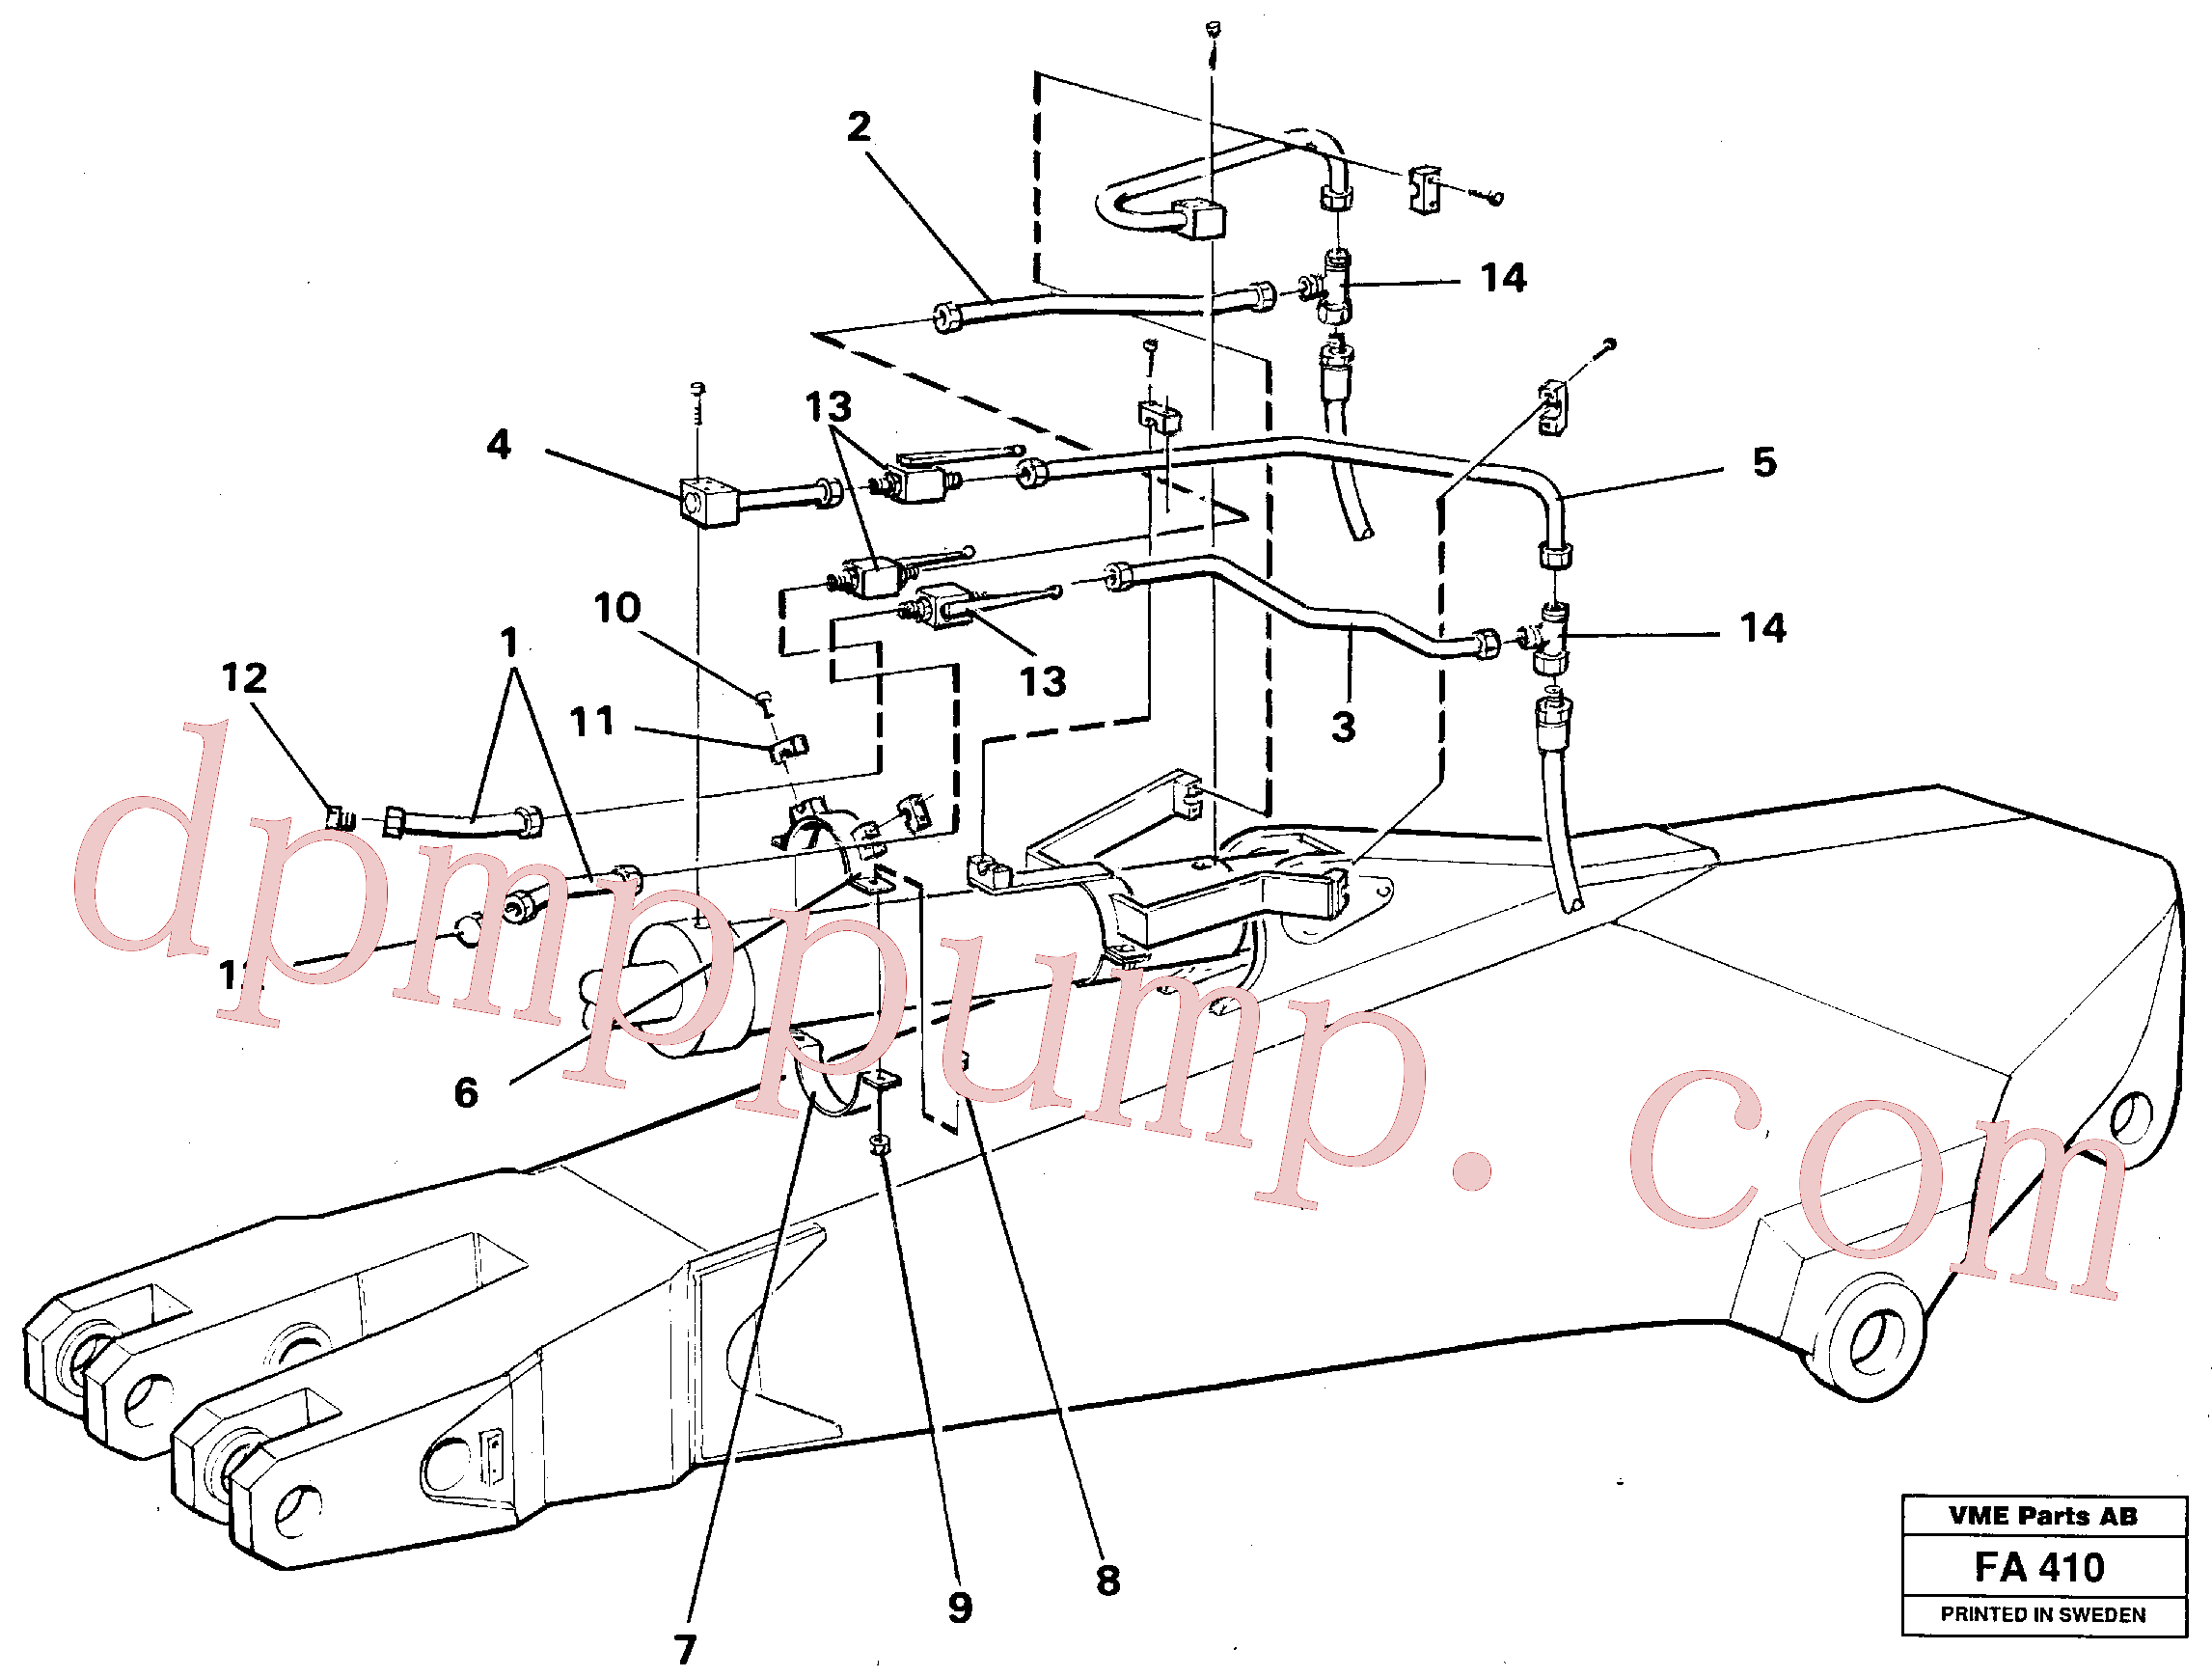 VOE14250695 for Volvo Parallel connected grab hydraulics incl. shut-offcocks on dipper arms.(FA410 assembly)